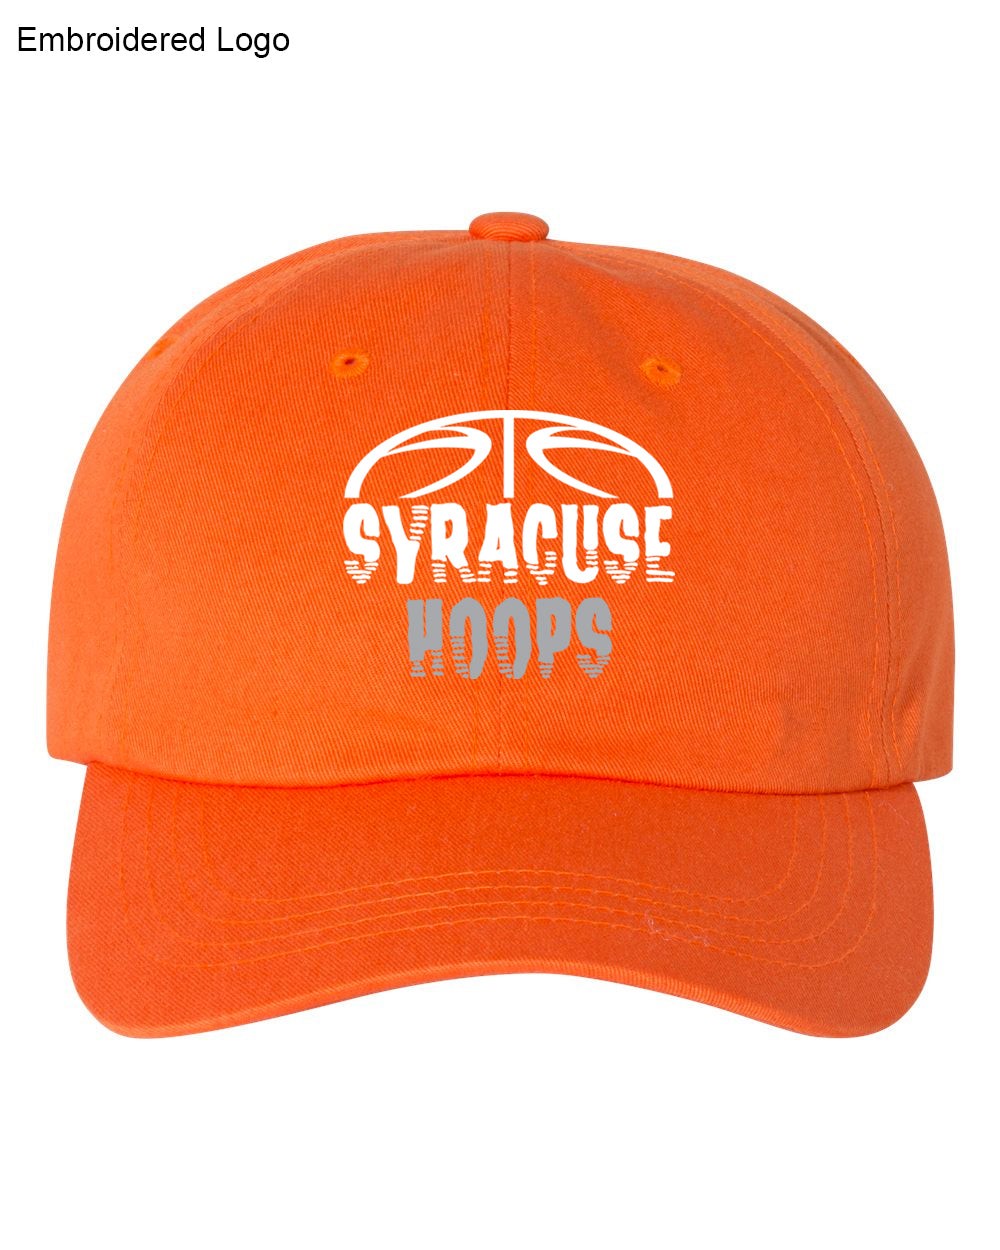 Hoops Orange Dad Hat